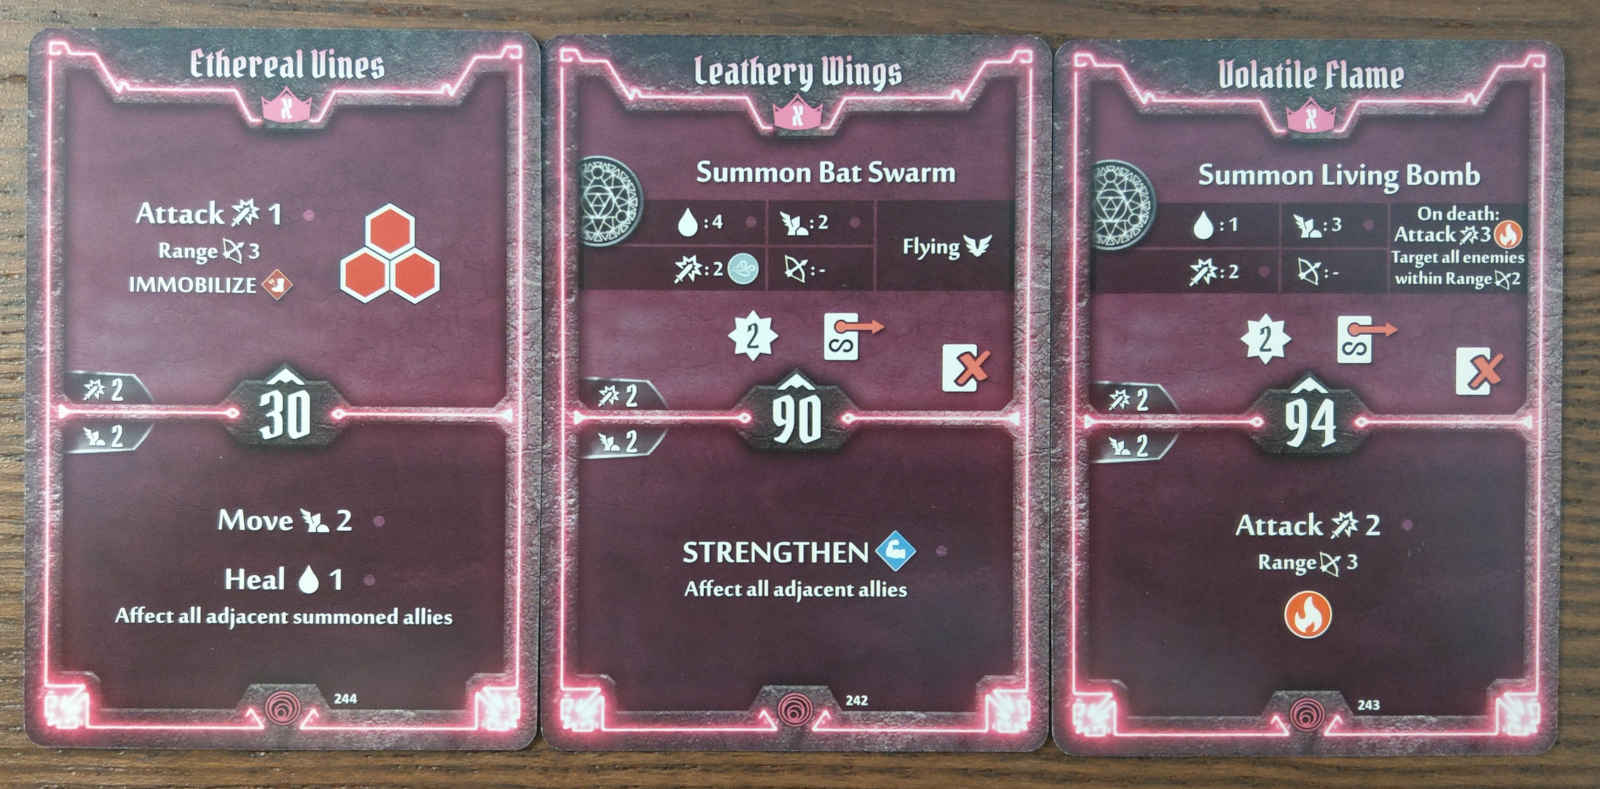 Summoner level X cards - Ethereal Vines, Leathery Wings, and Volatile Flame